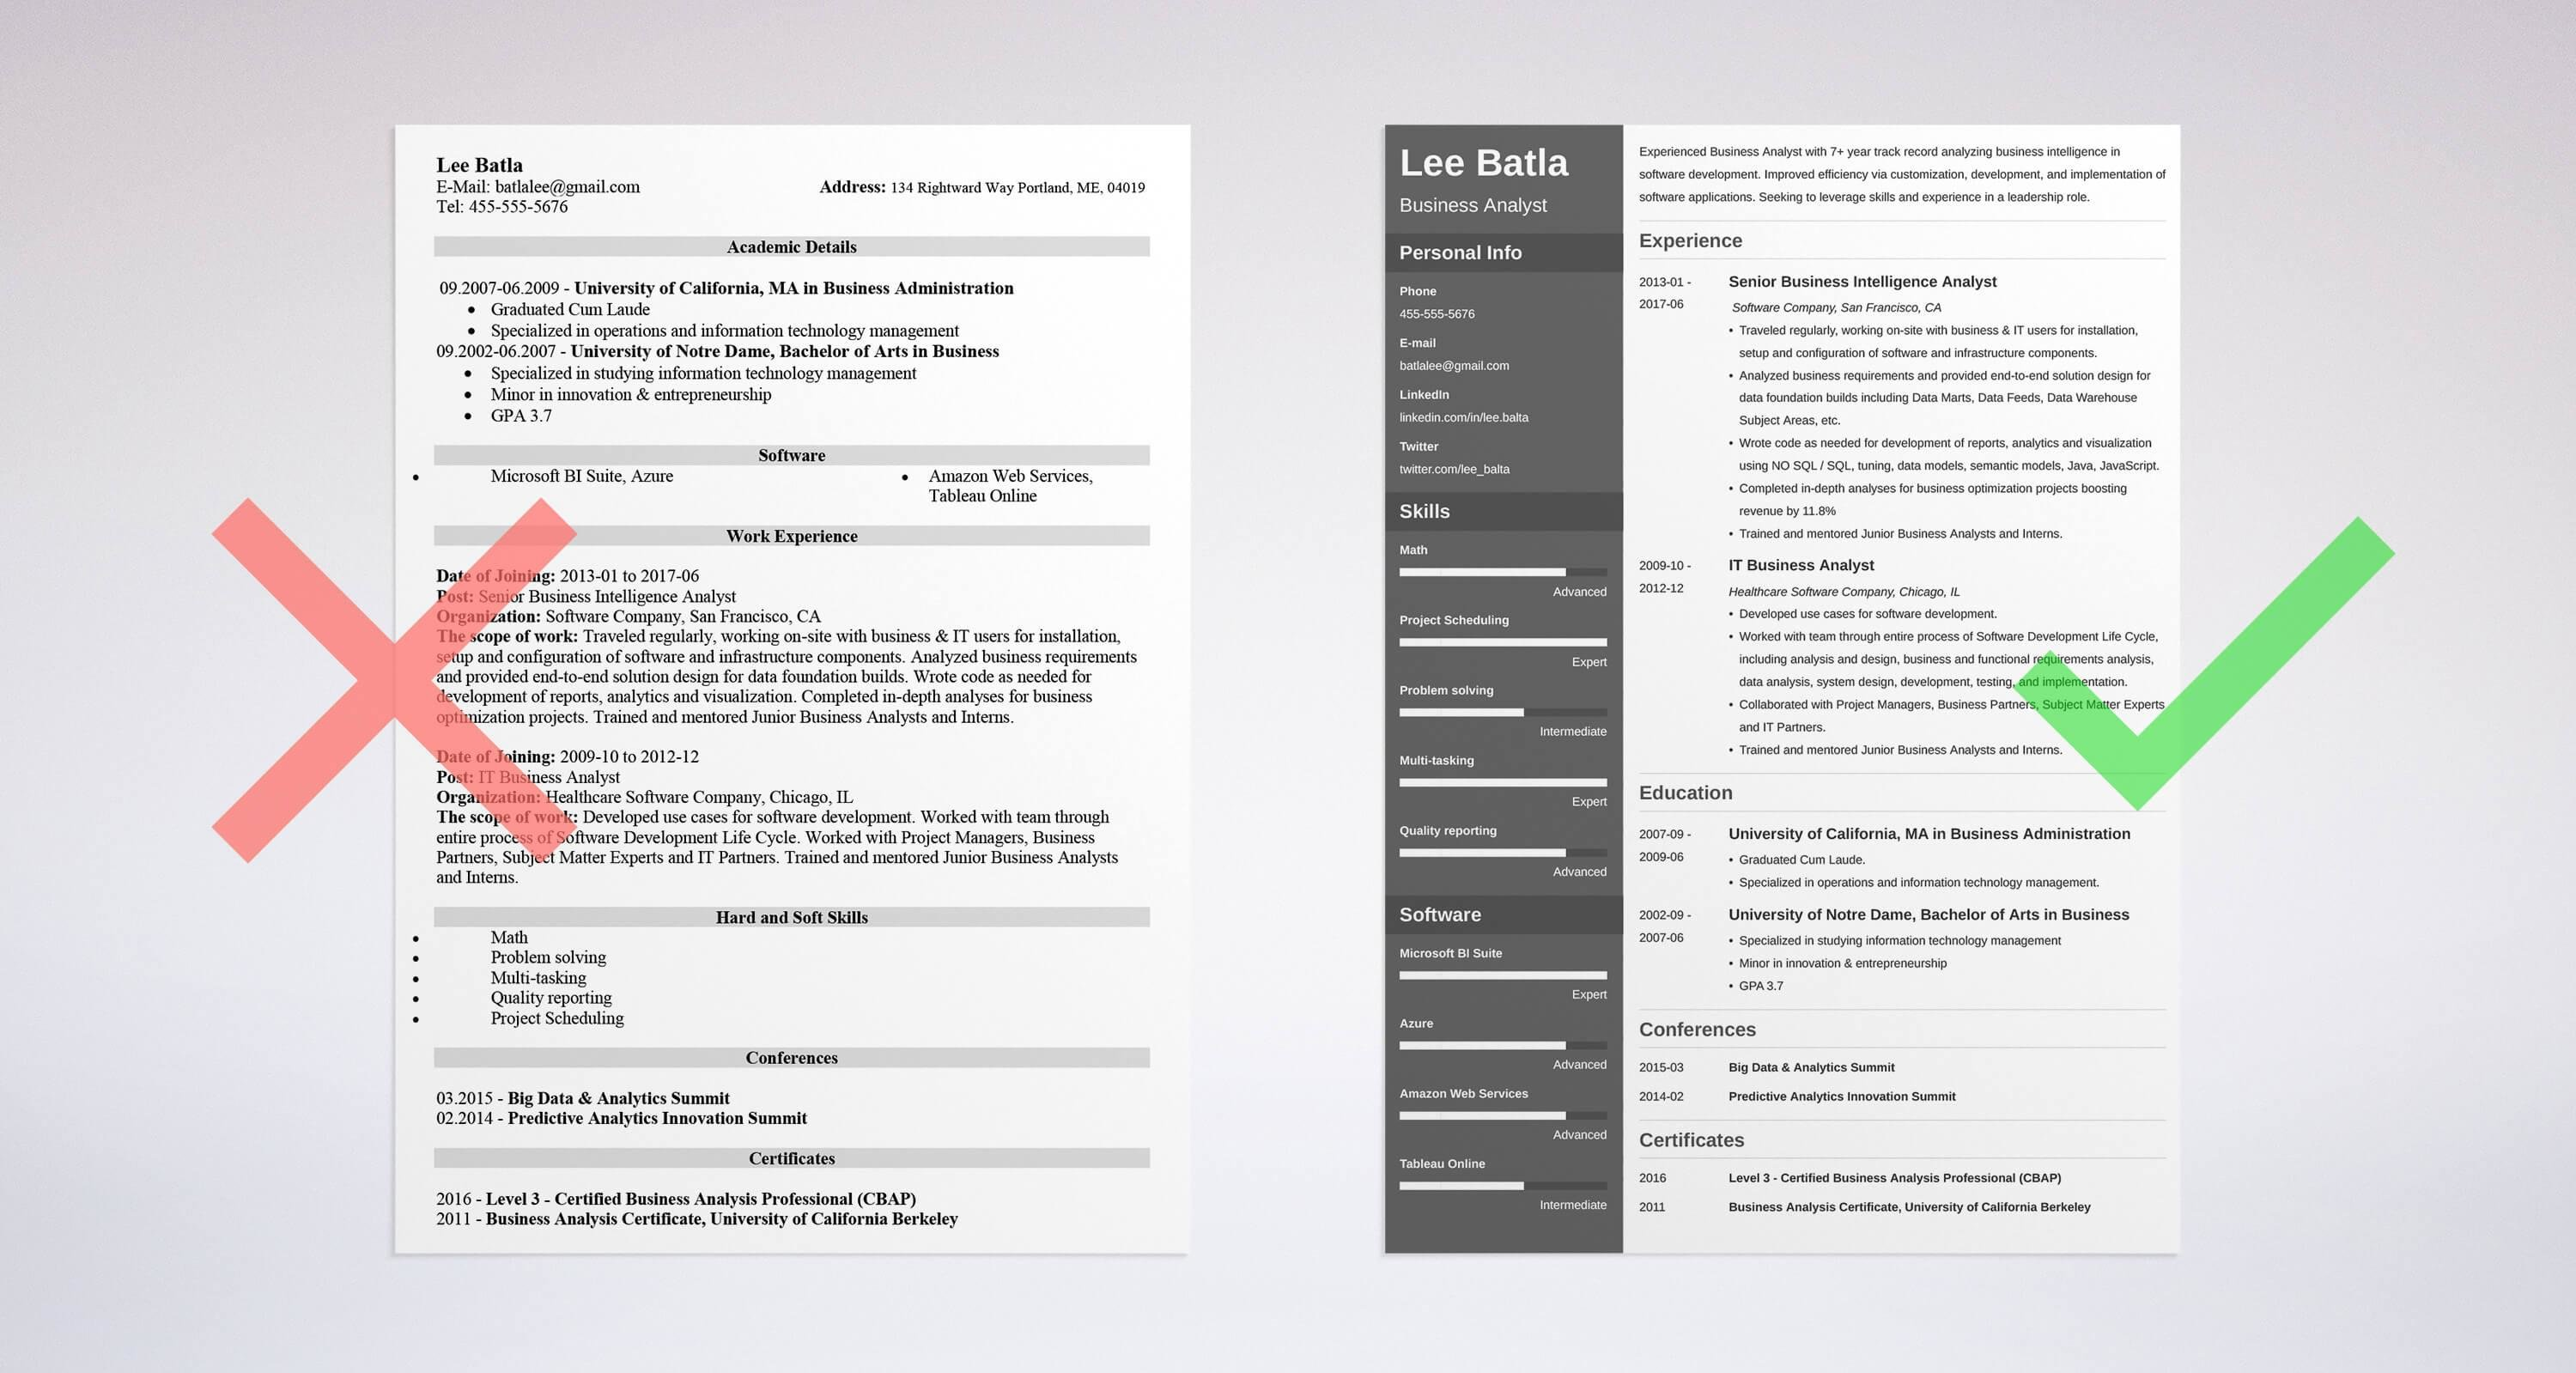 High Quality Business Analyst Resume: Sample U0026 Complete Guide [+20 Examples]